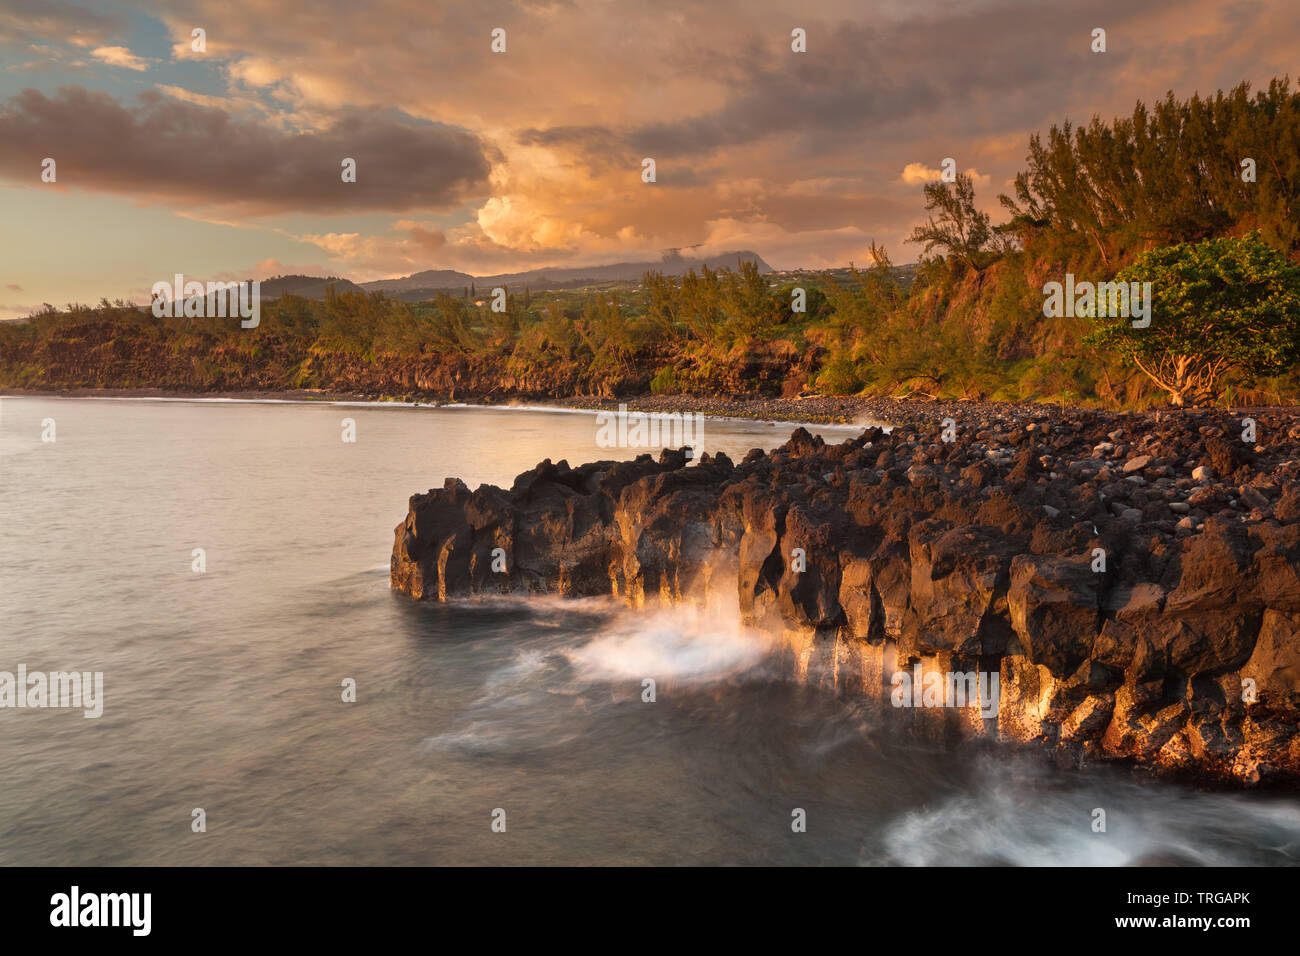 Pointe de Langevin, most southerly point of European Union, Réunion, France - Stock Image